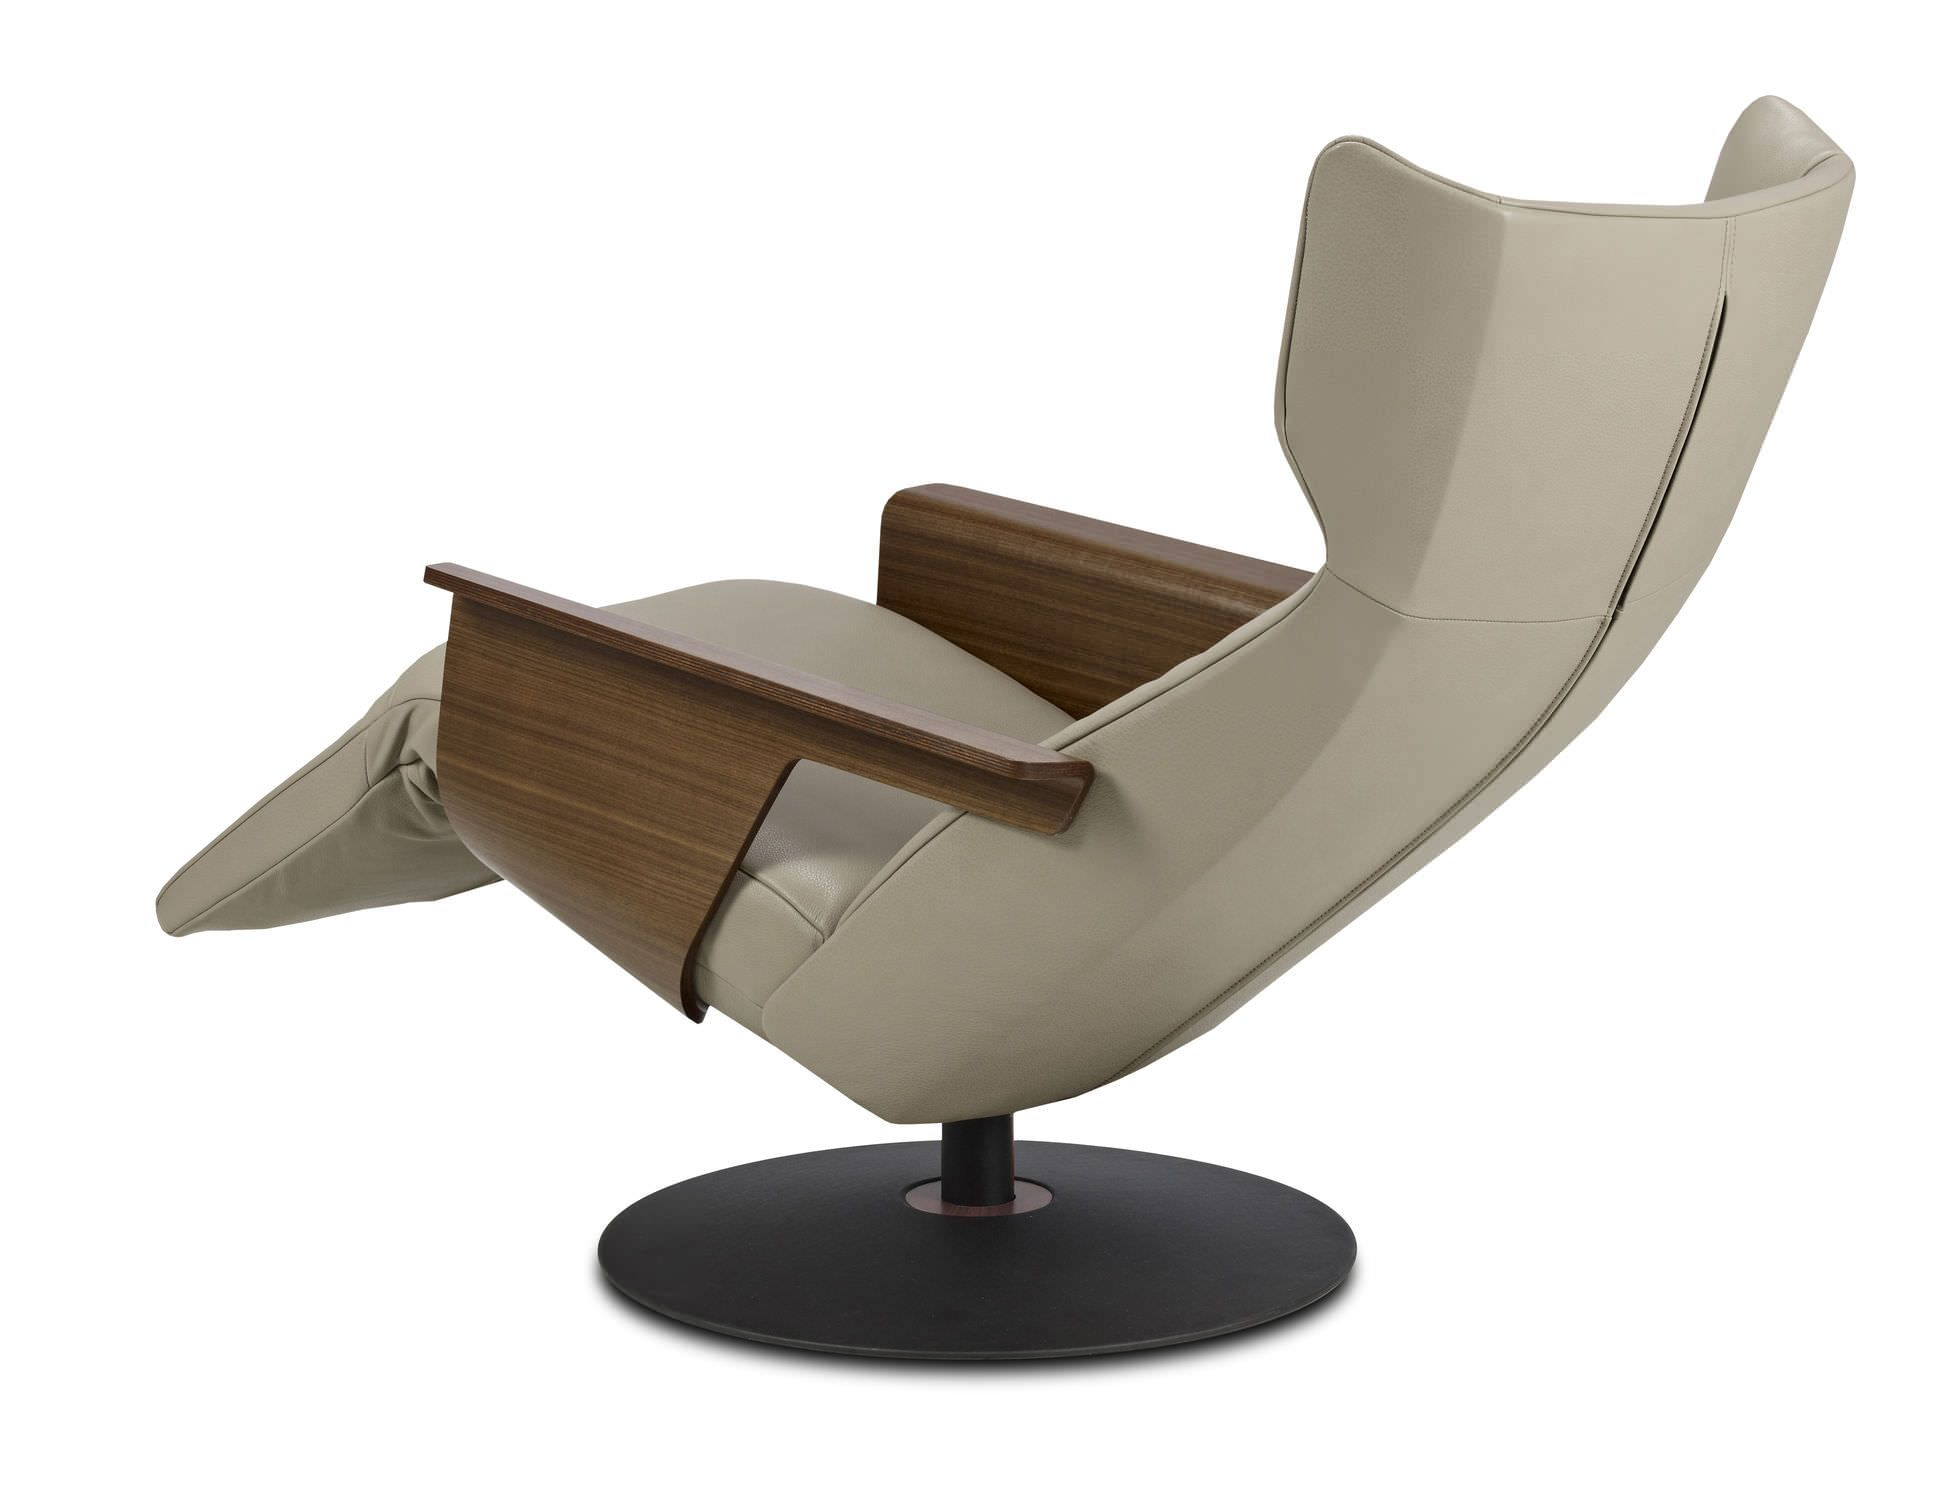 Contemporary Leather Recliner Armchair With Footstool Orea By Christophe Giraud Jori